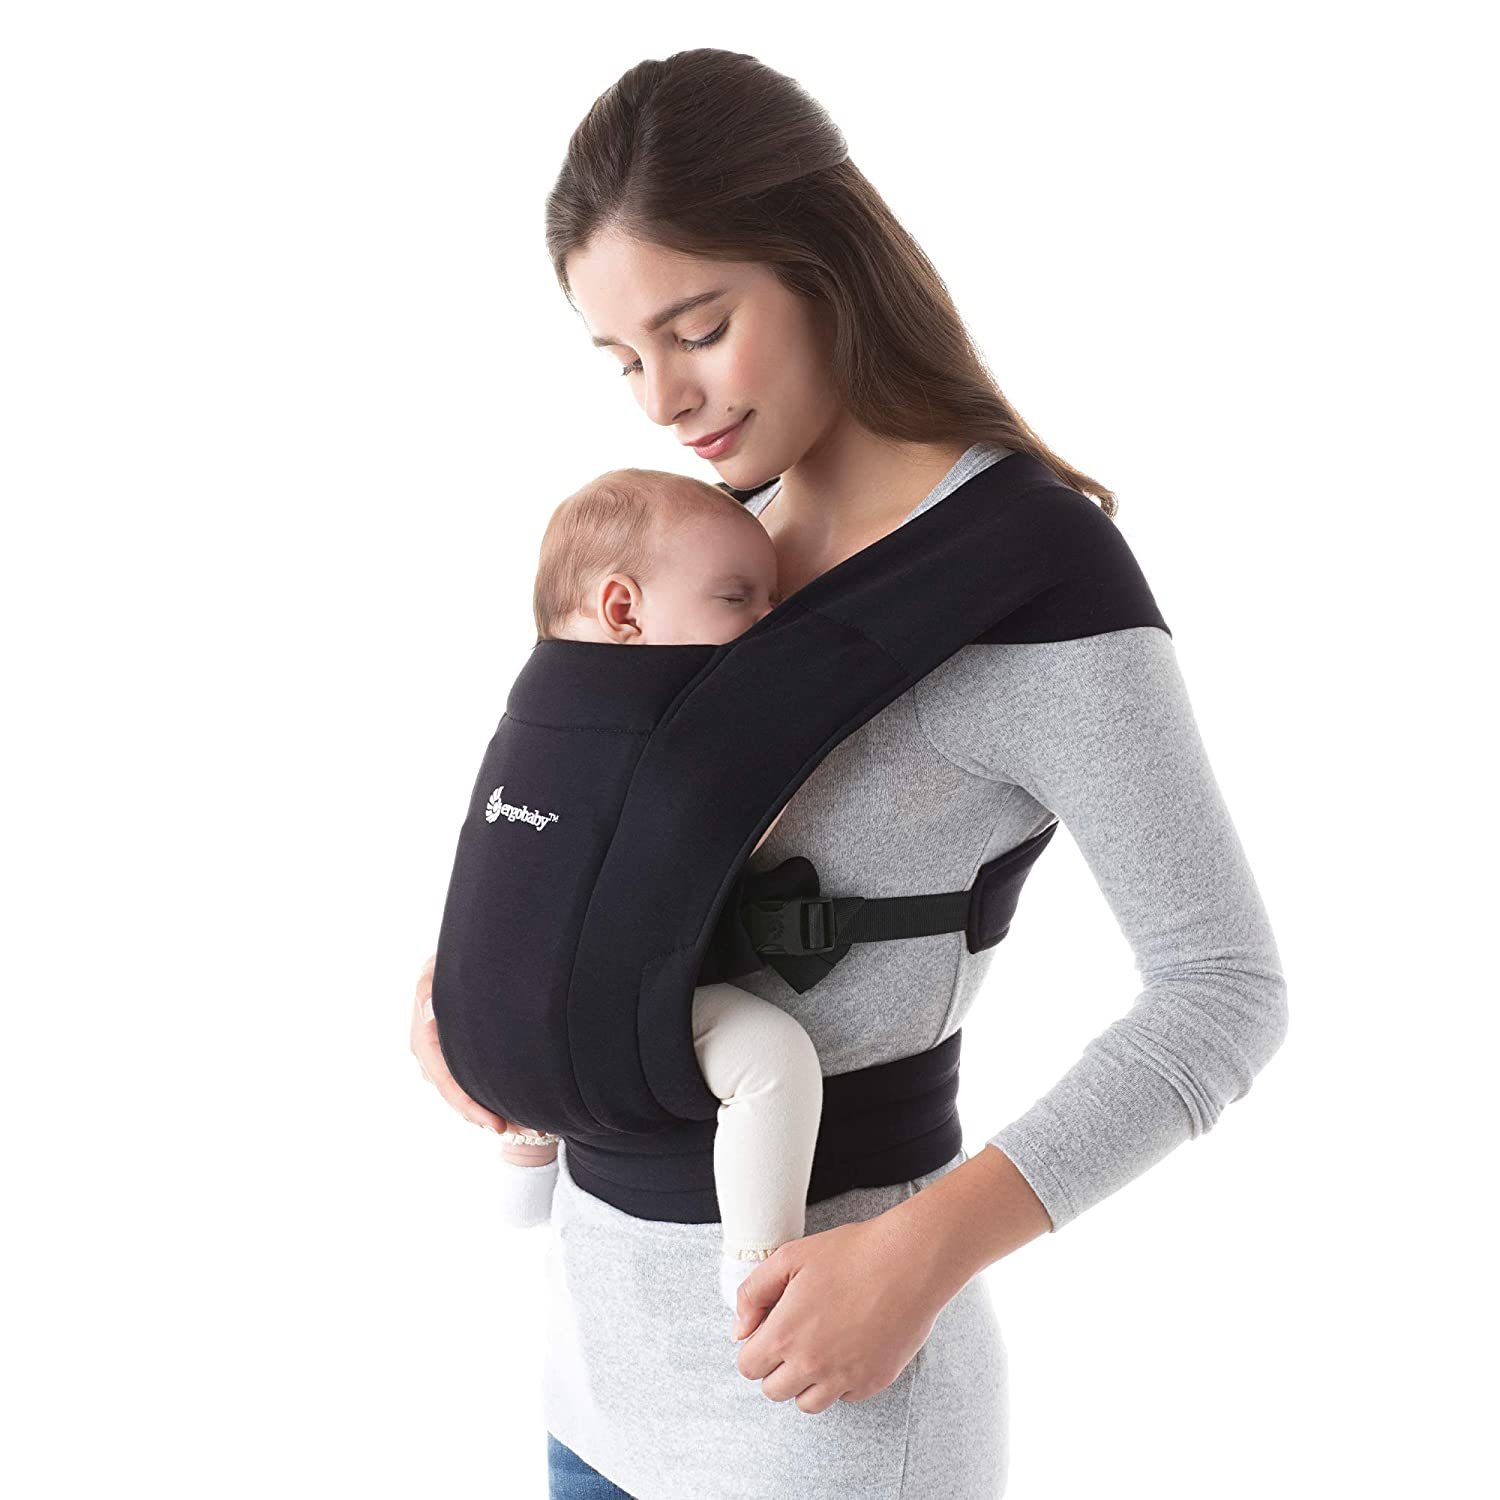 Ergobaby Embrace Baby Wrap Carrier, Infant Carrier for Newborns 7-25 Pounds, Pure Black